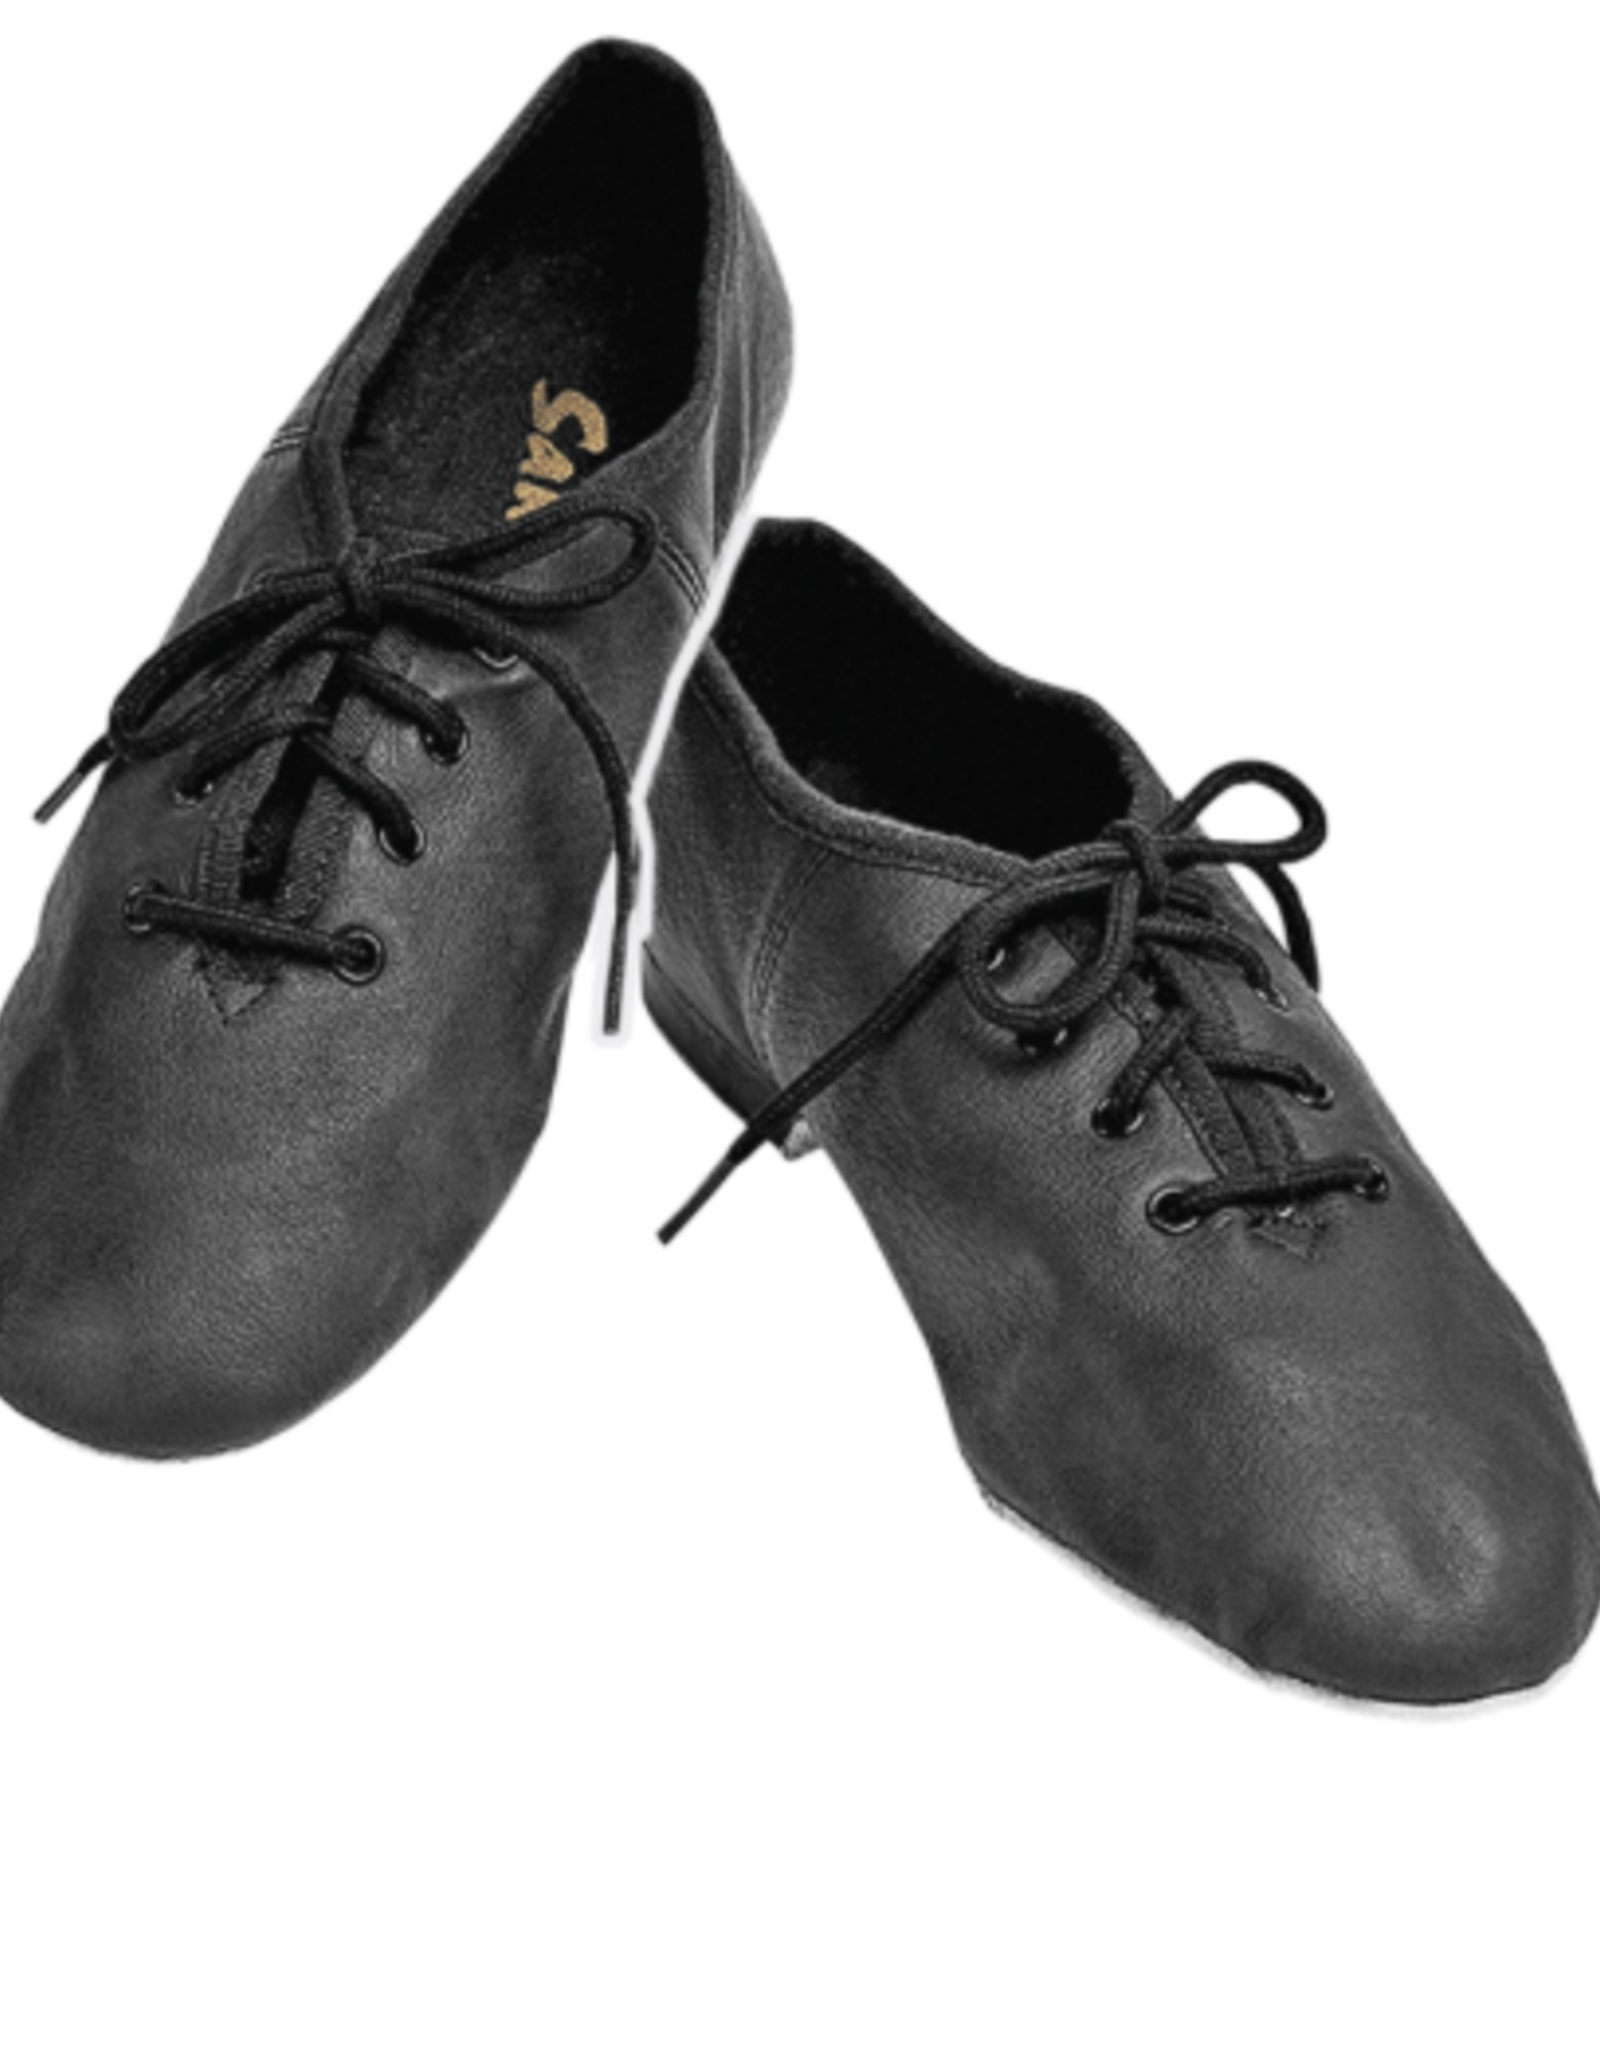 SANSHA CARROUSEL MICROFIBER LACE UP JAZZ SHOES (JS16)